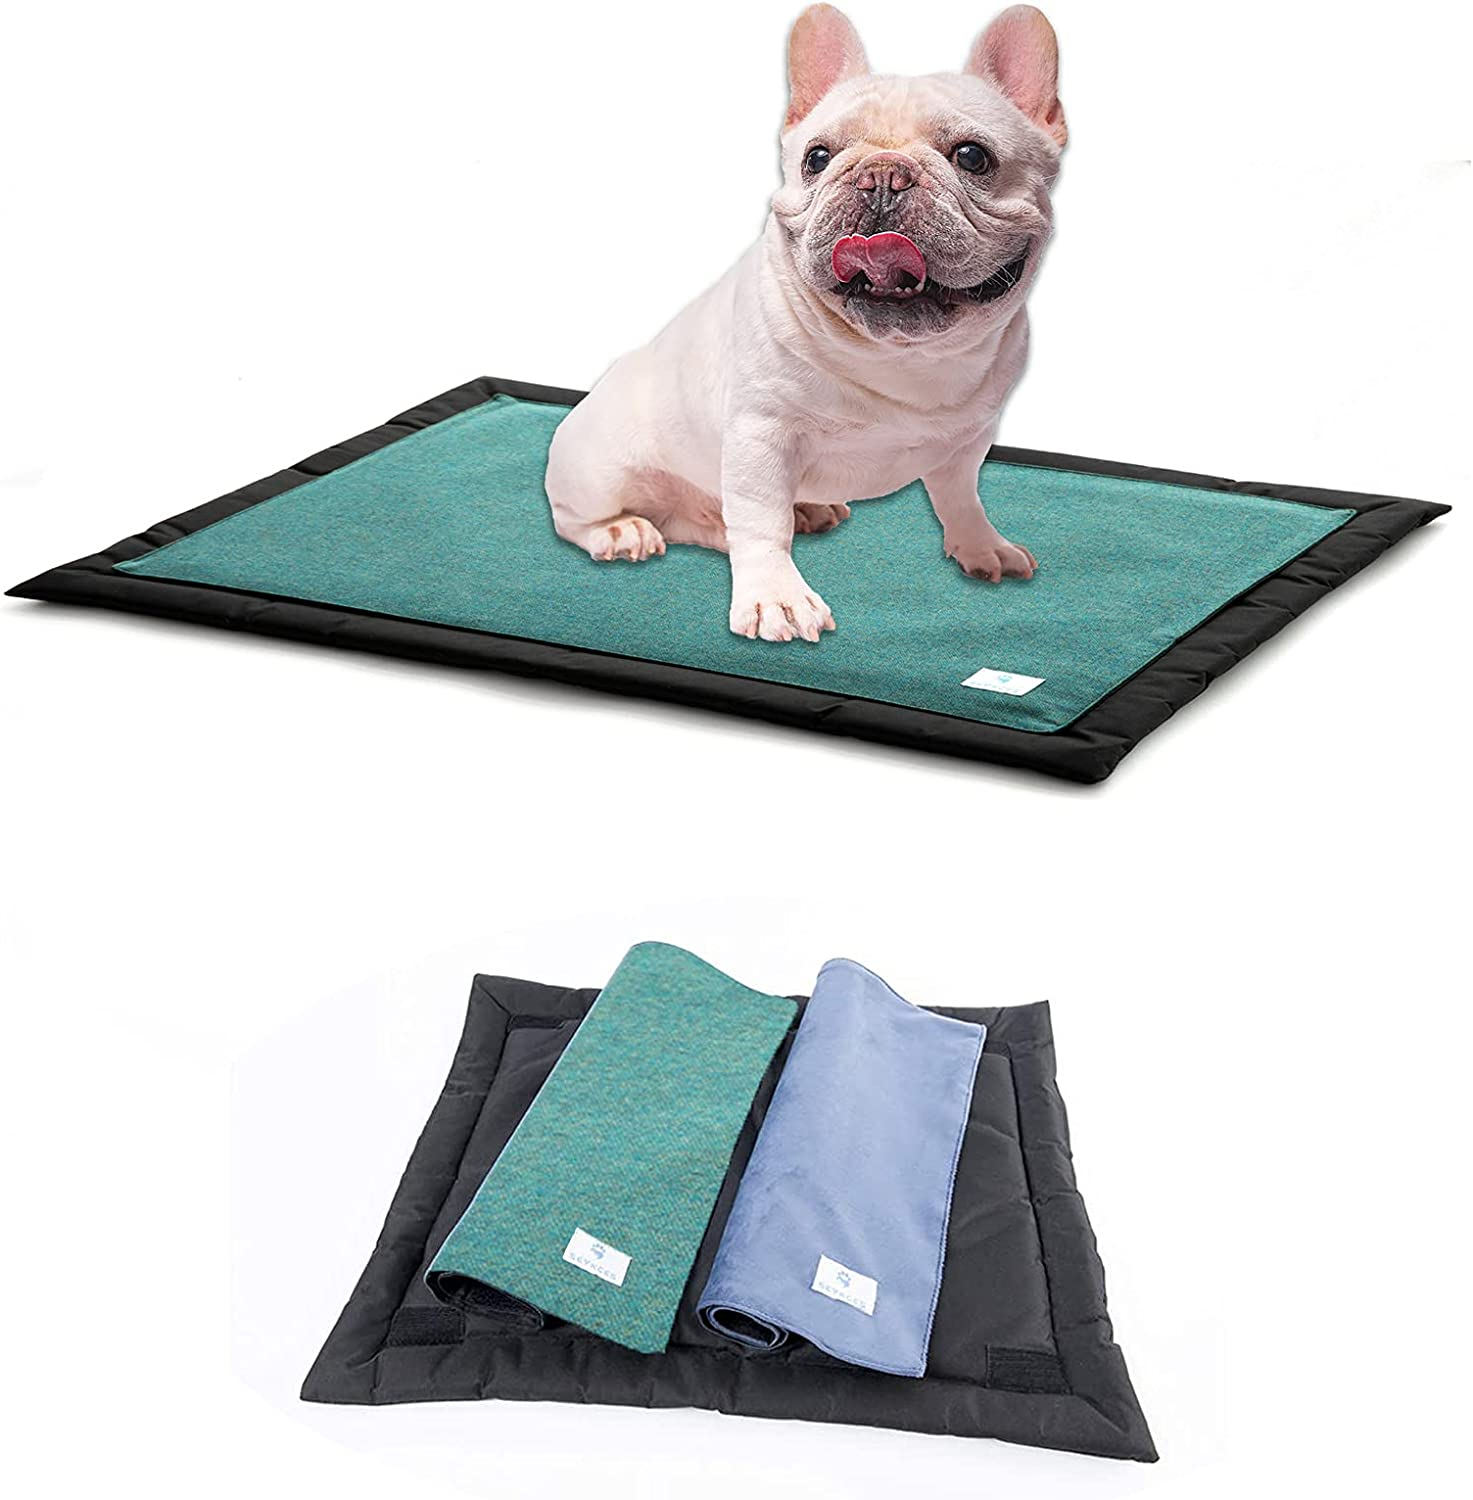 SEYKCES Dog Bed Crate Bed Washable Dog Crate Pad with Removable Cover and Waterproof Liner Pet Bed for Medium Small Dogs and Cats 24